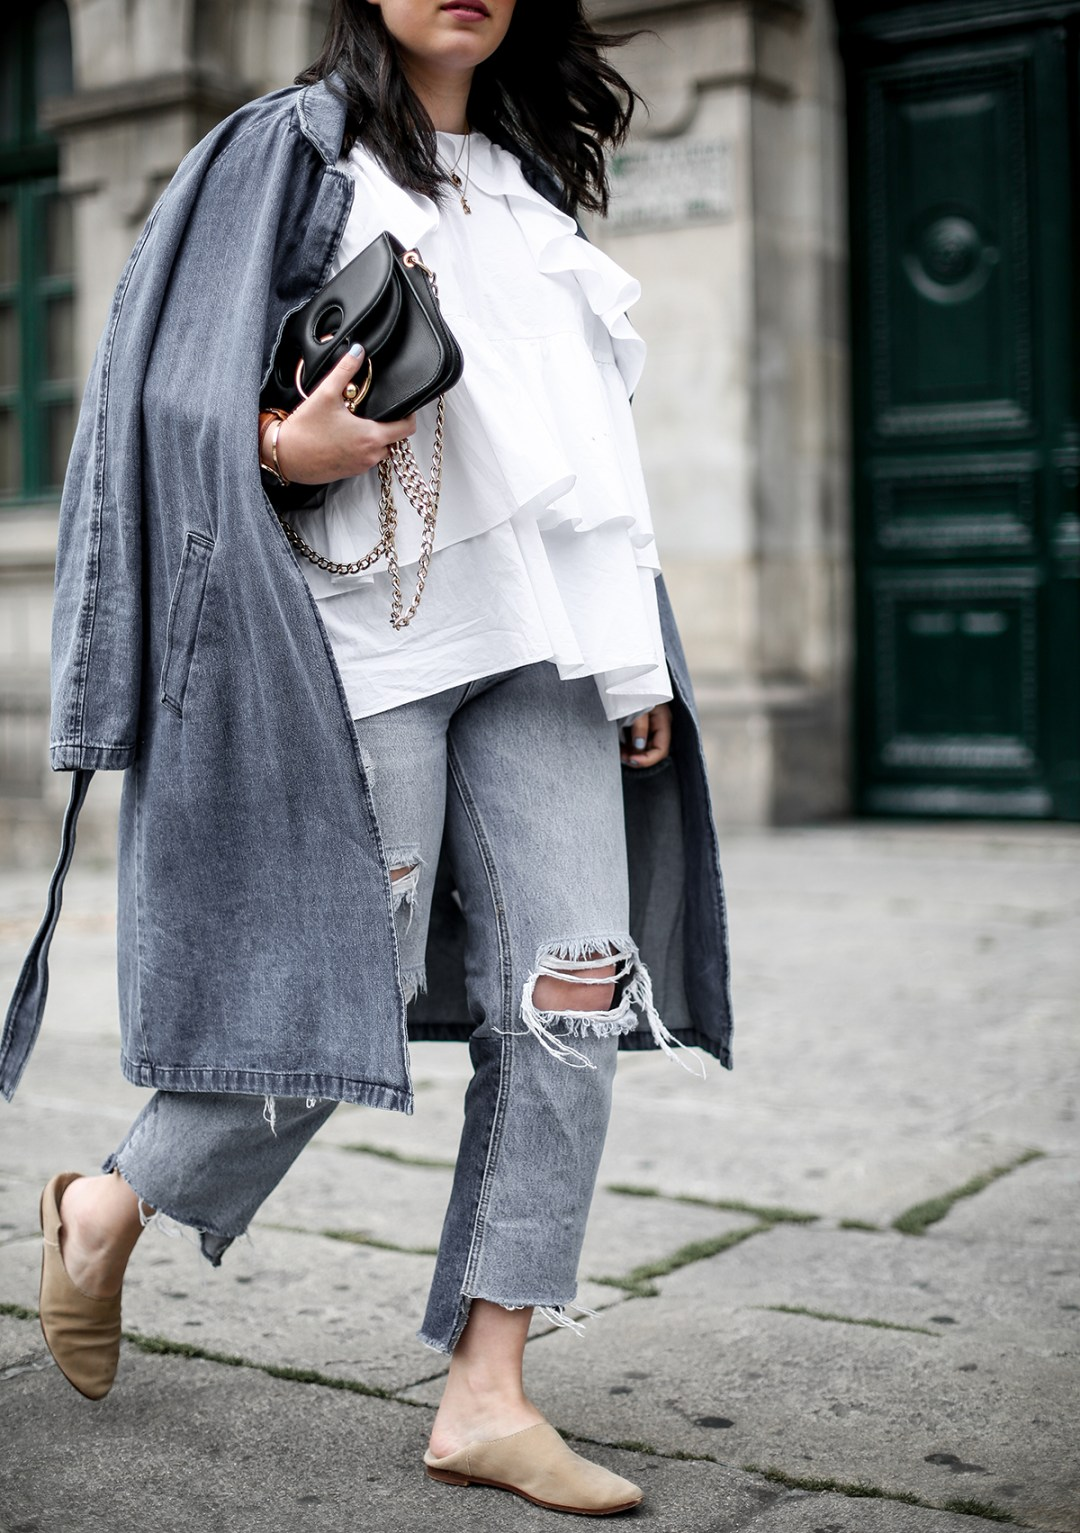 trench-denim-ripped-jeans-ruffle-blouse-zara-streetstyle6